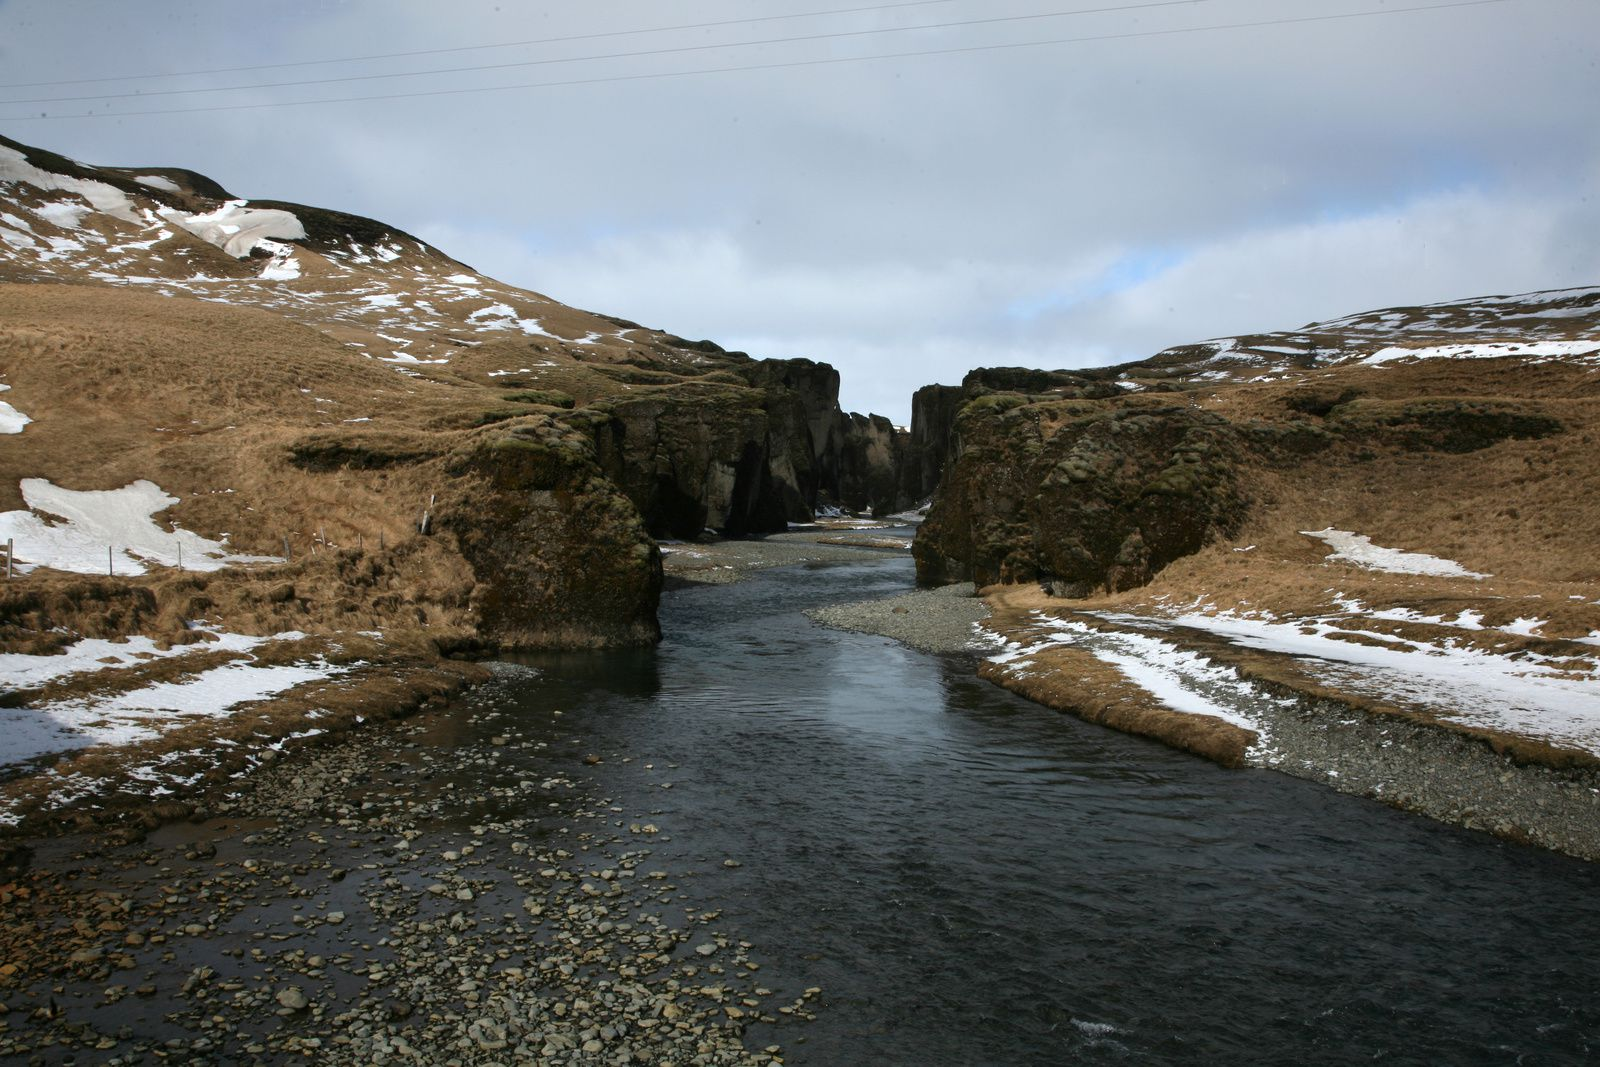 Fjaðrárgljúfur canyon views from the level of the river Fjaðrá - photo © 2015 Bernard Duyck